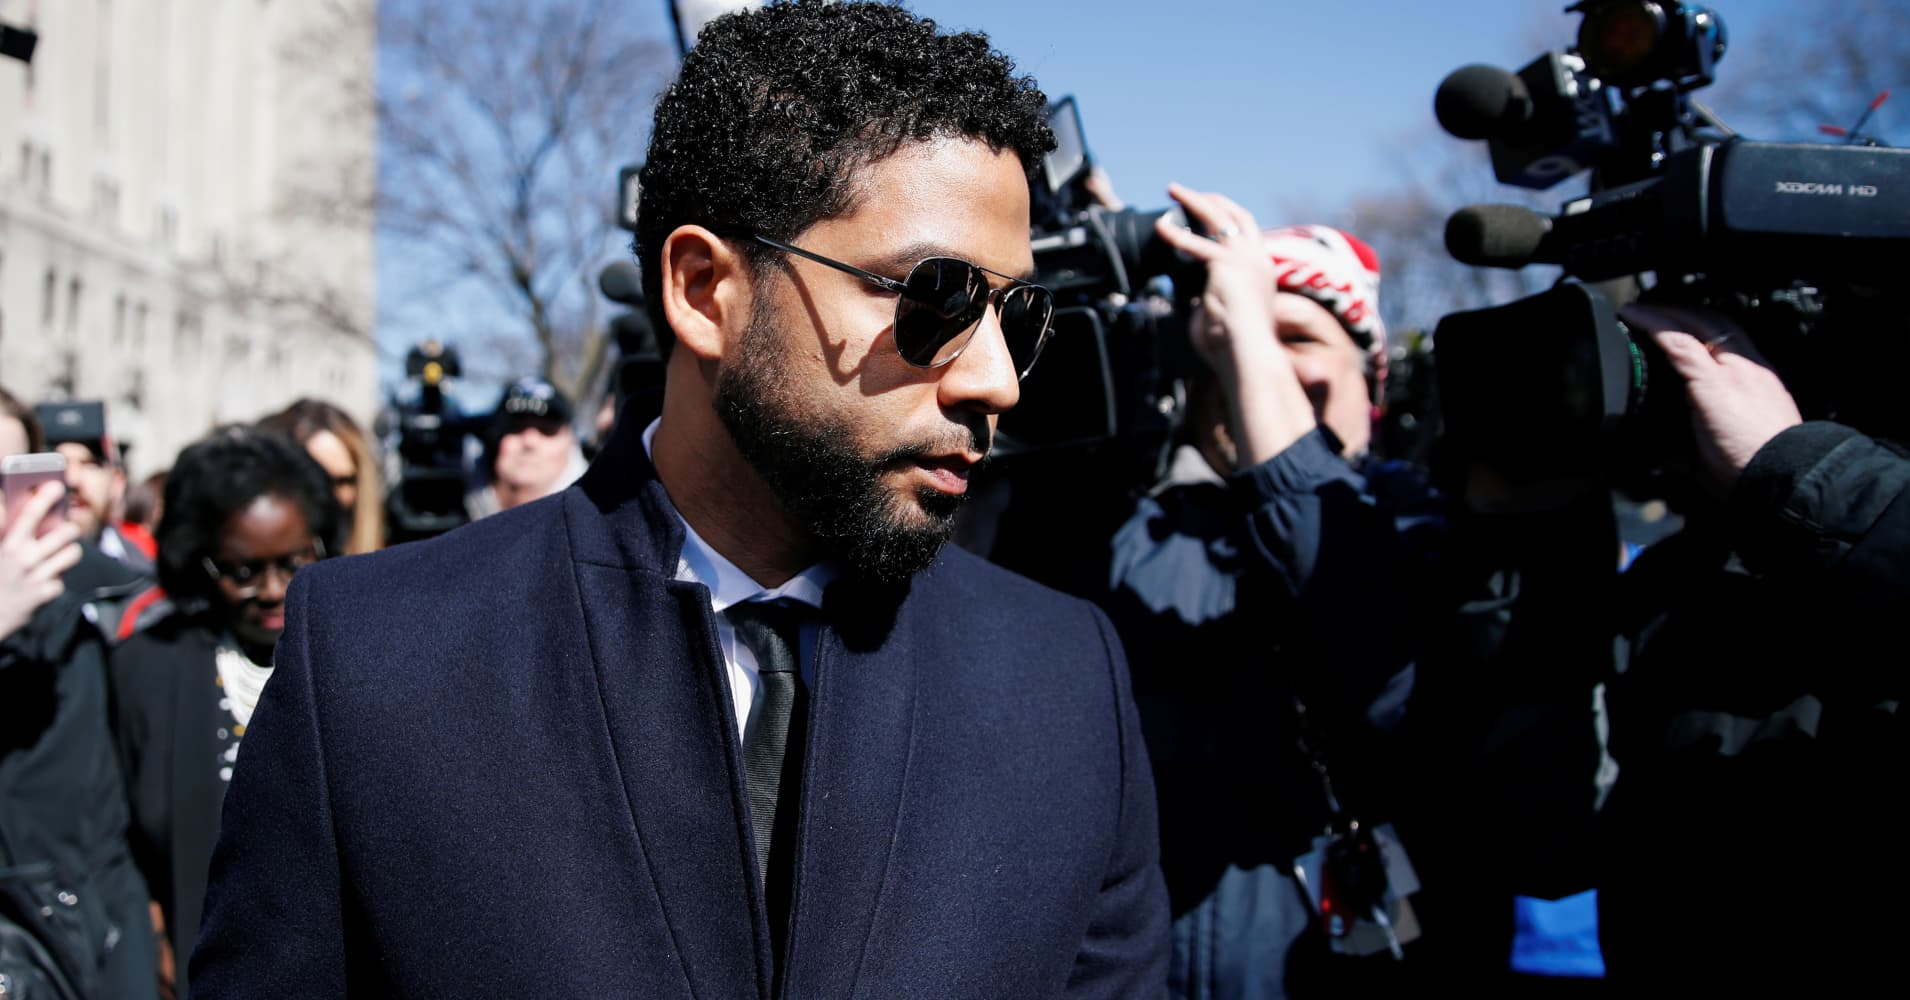 Charges against 'Empire' actor Jussie Smollett dropped